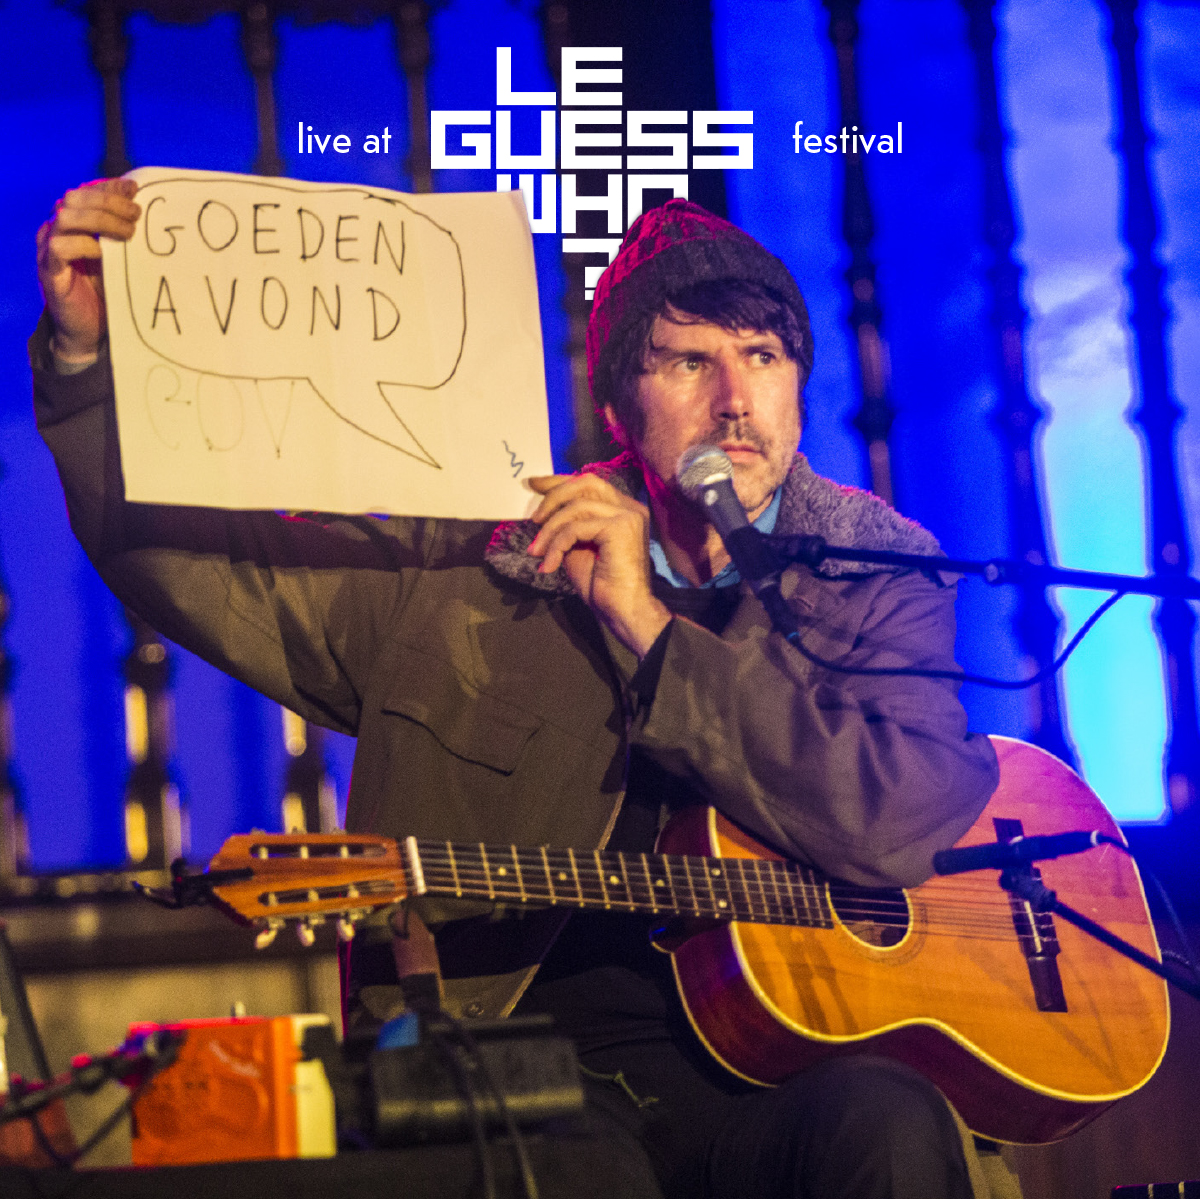 Listen to Gruff Rhys' full surprise performance at LGW17, via The Line of Best Fit